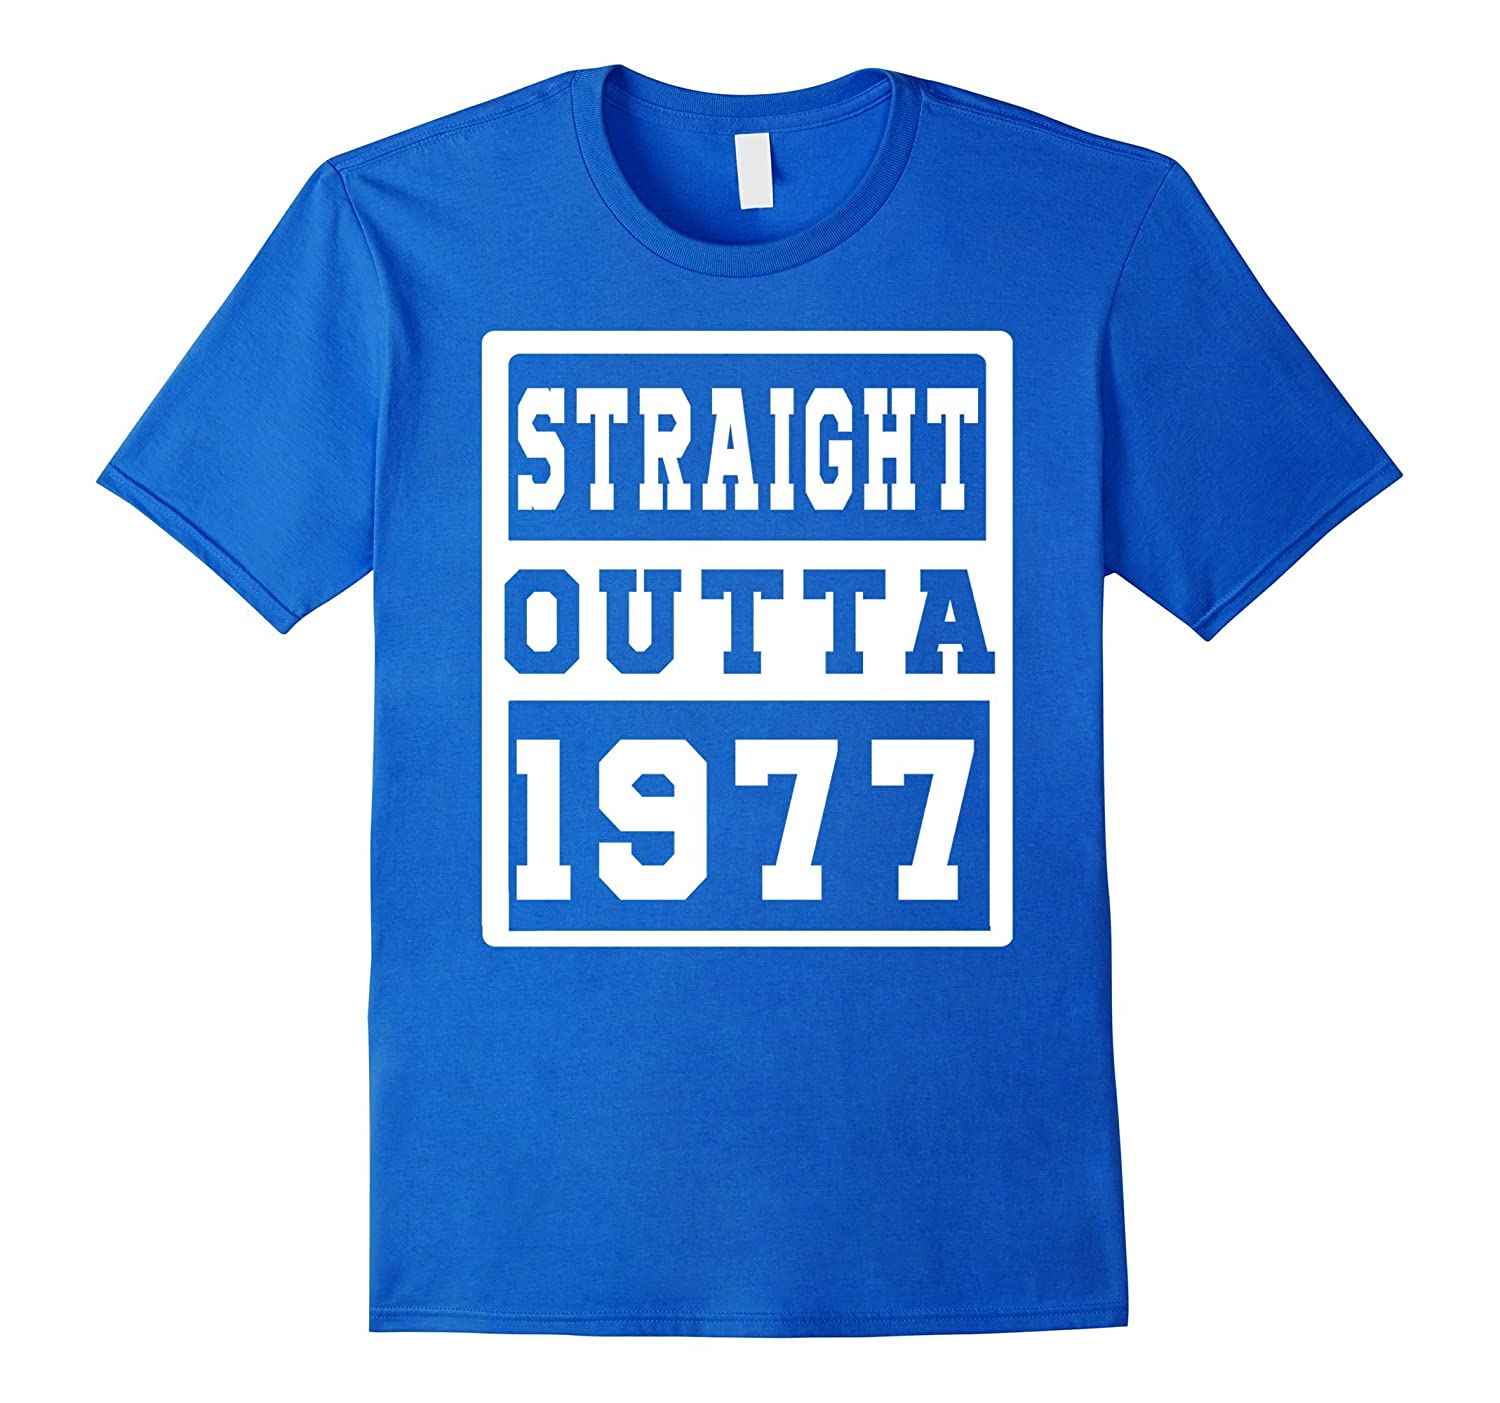 40 th Birthday Gift T-Shirt for love STRAIGHT OUTTA 1977